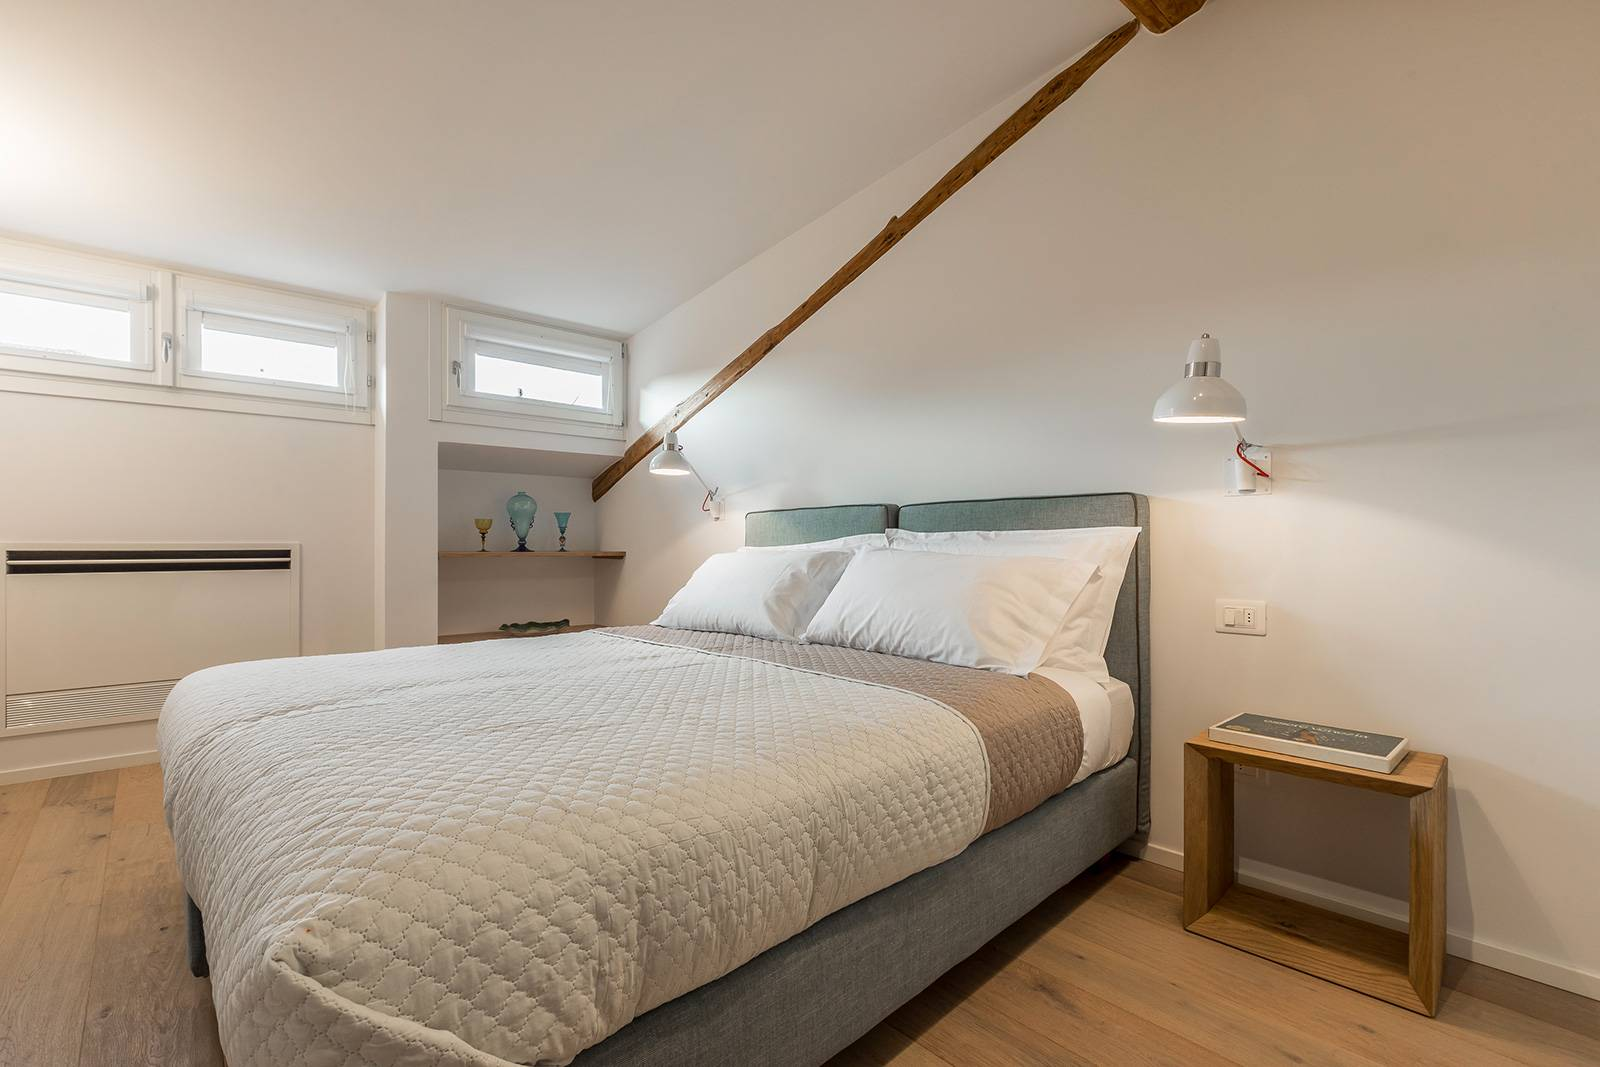 the second bedroom can be used as double or two single beds, on request